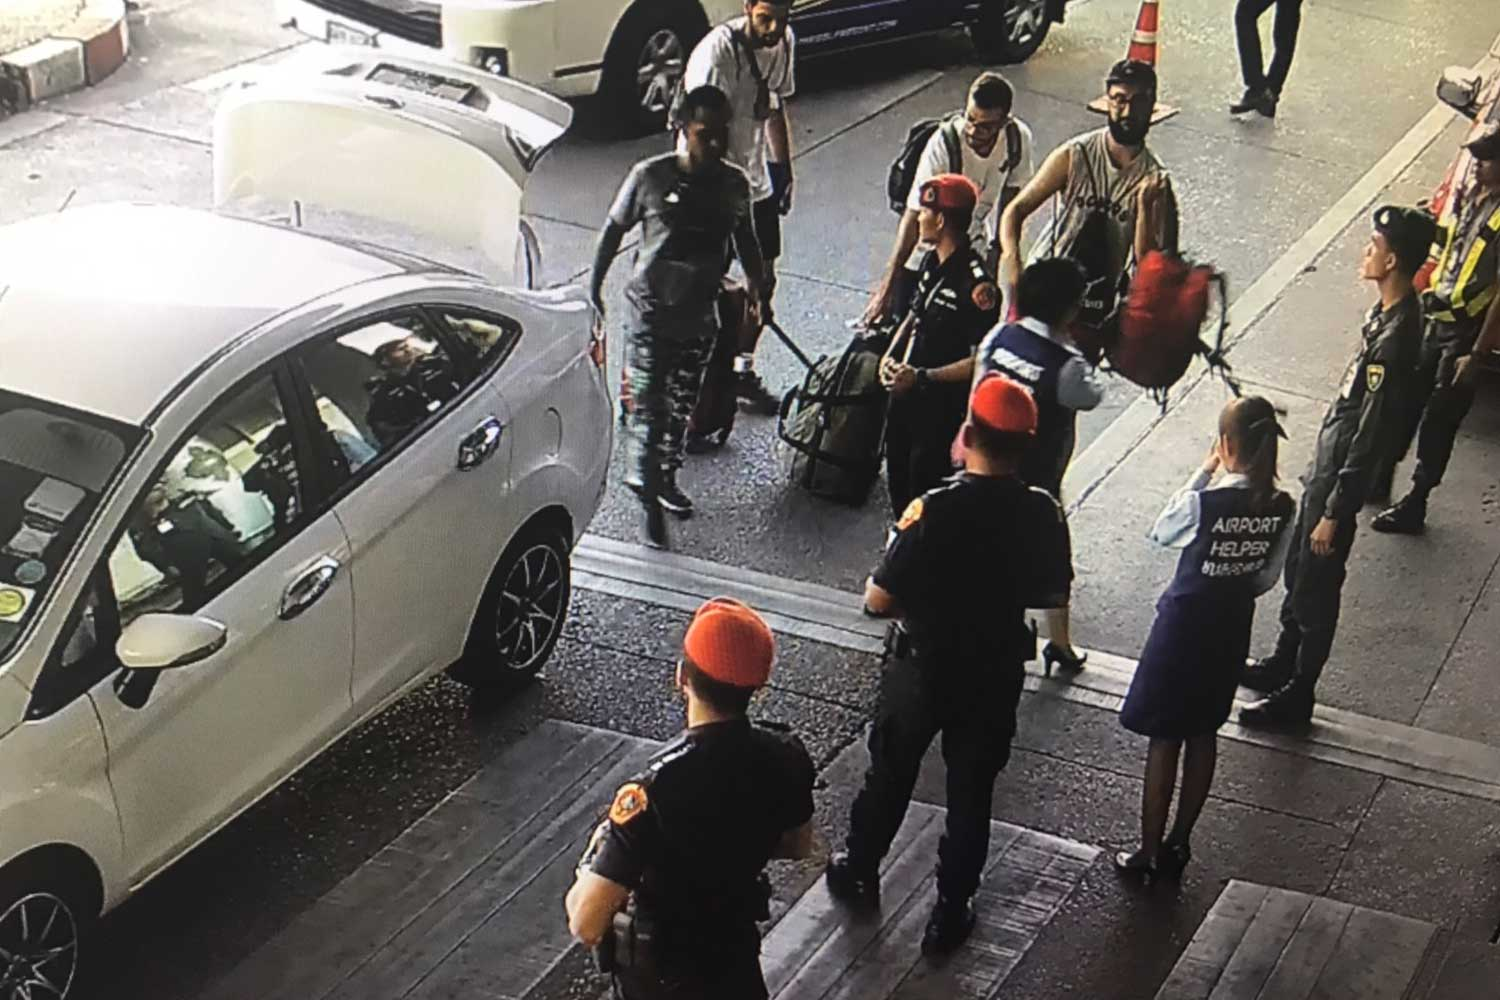 CONFRONTATION: Grab car driver Suchart Chaipraya, at the back of his car, is stopped at Gate 5 of Chiang Mai airport on July 20. He has accused airport security officials of assaulting him, which they deny. (Supplied photo)